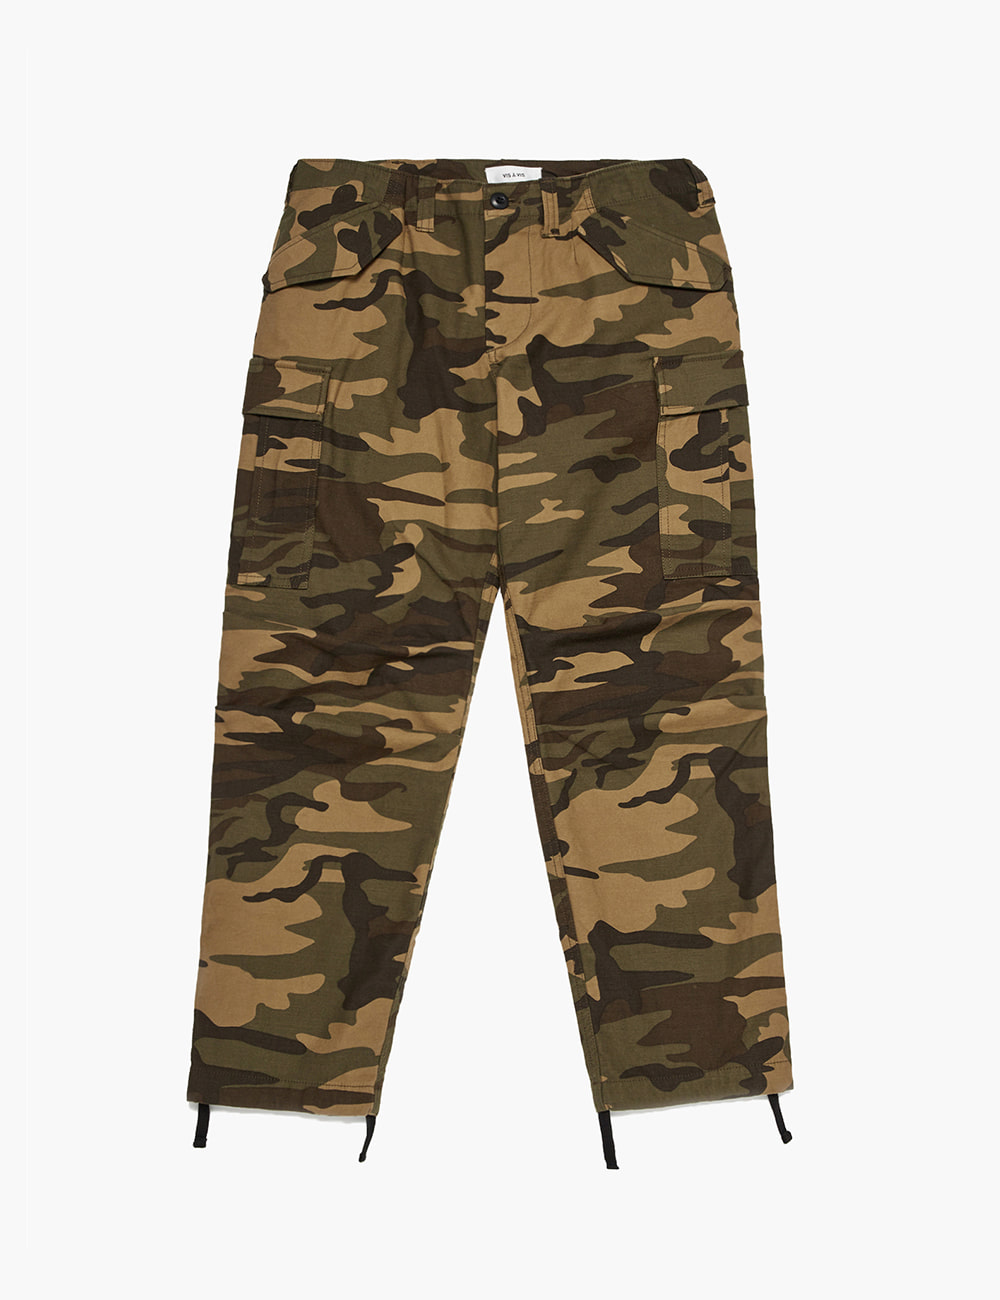 FIELD CARGO PANTS (WOOD CAMO)